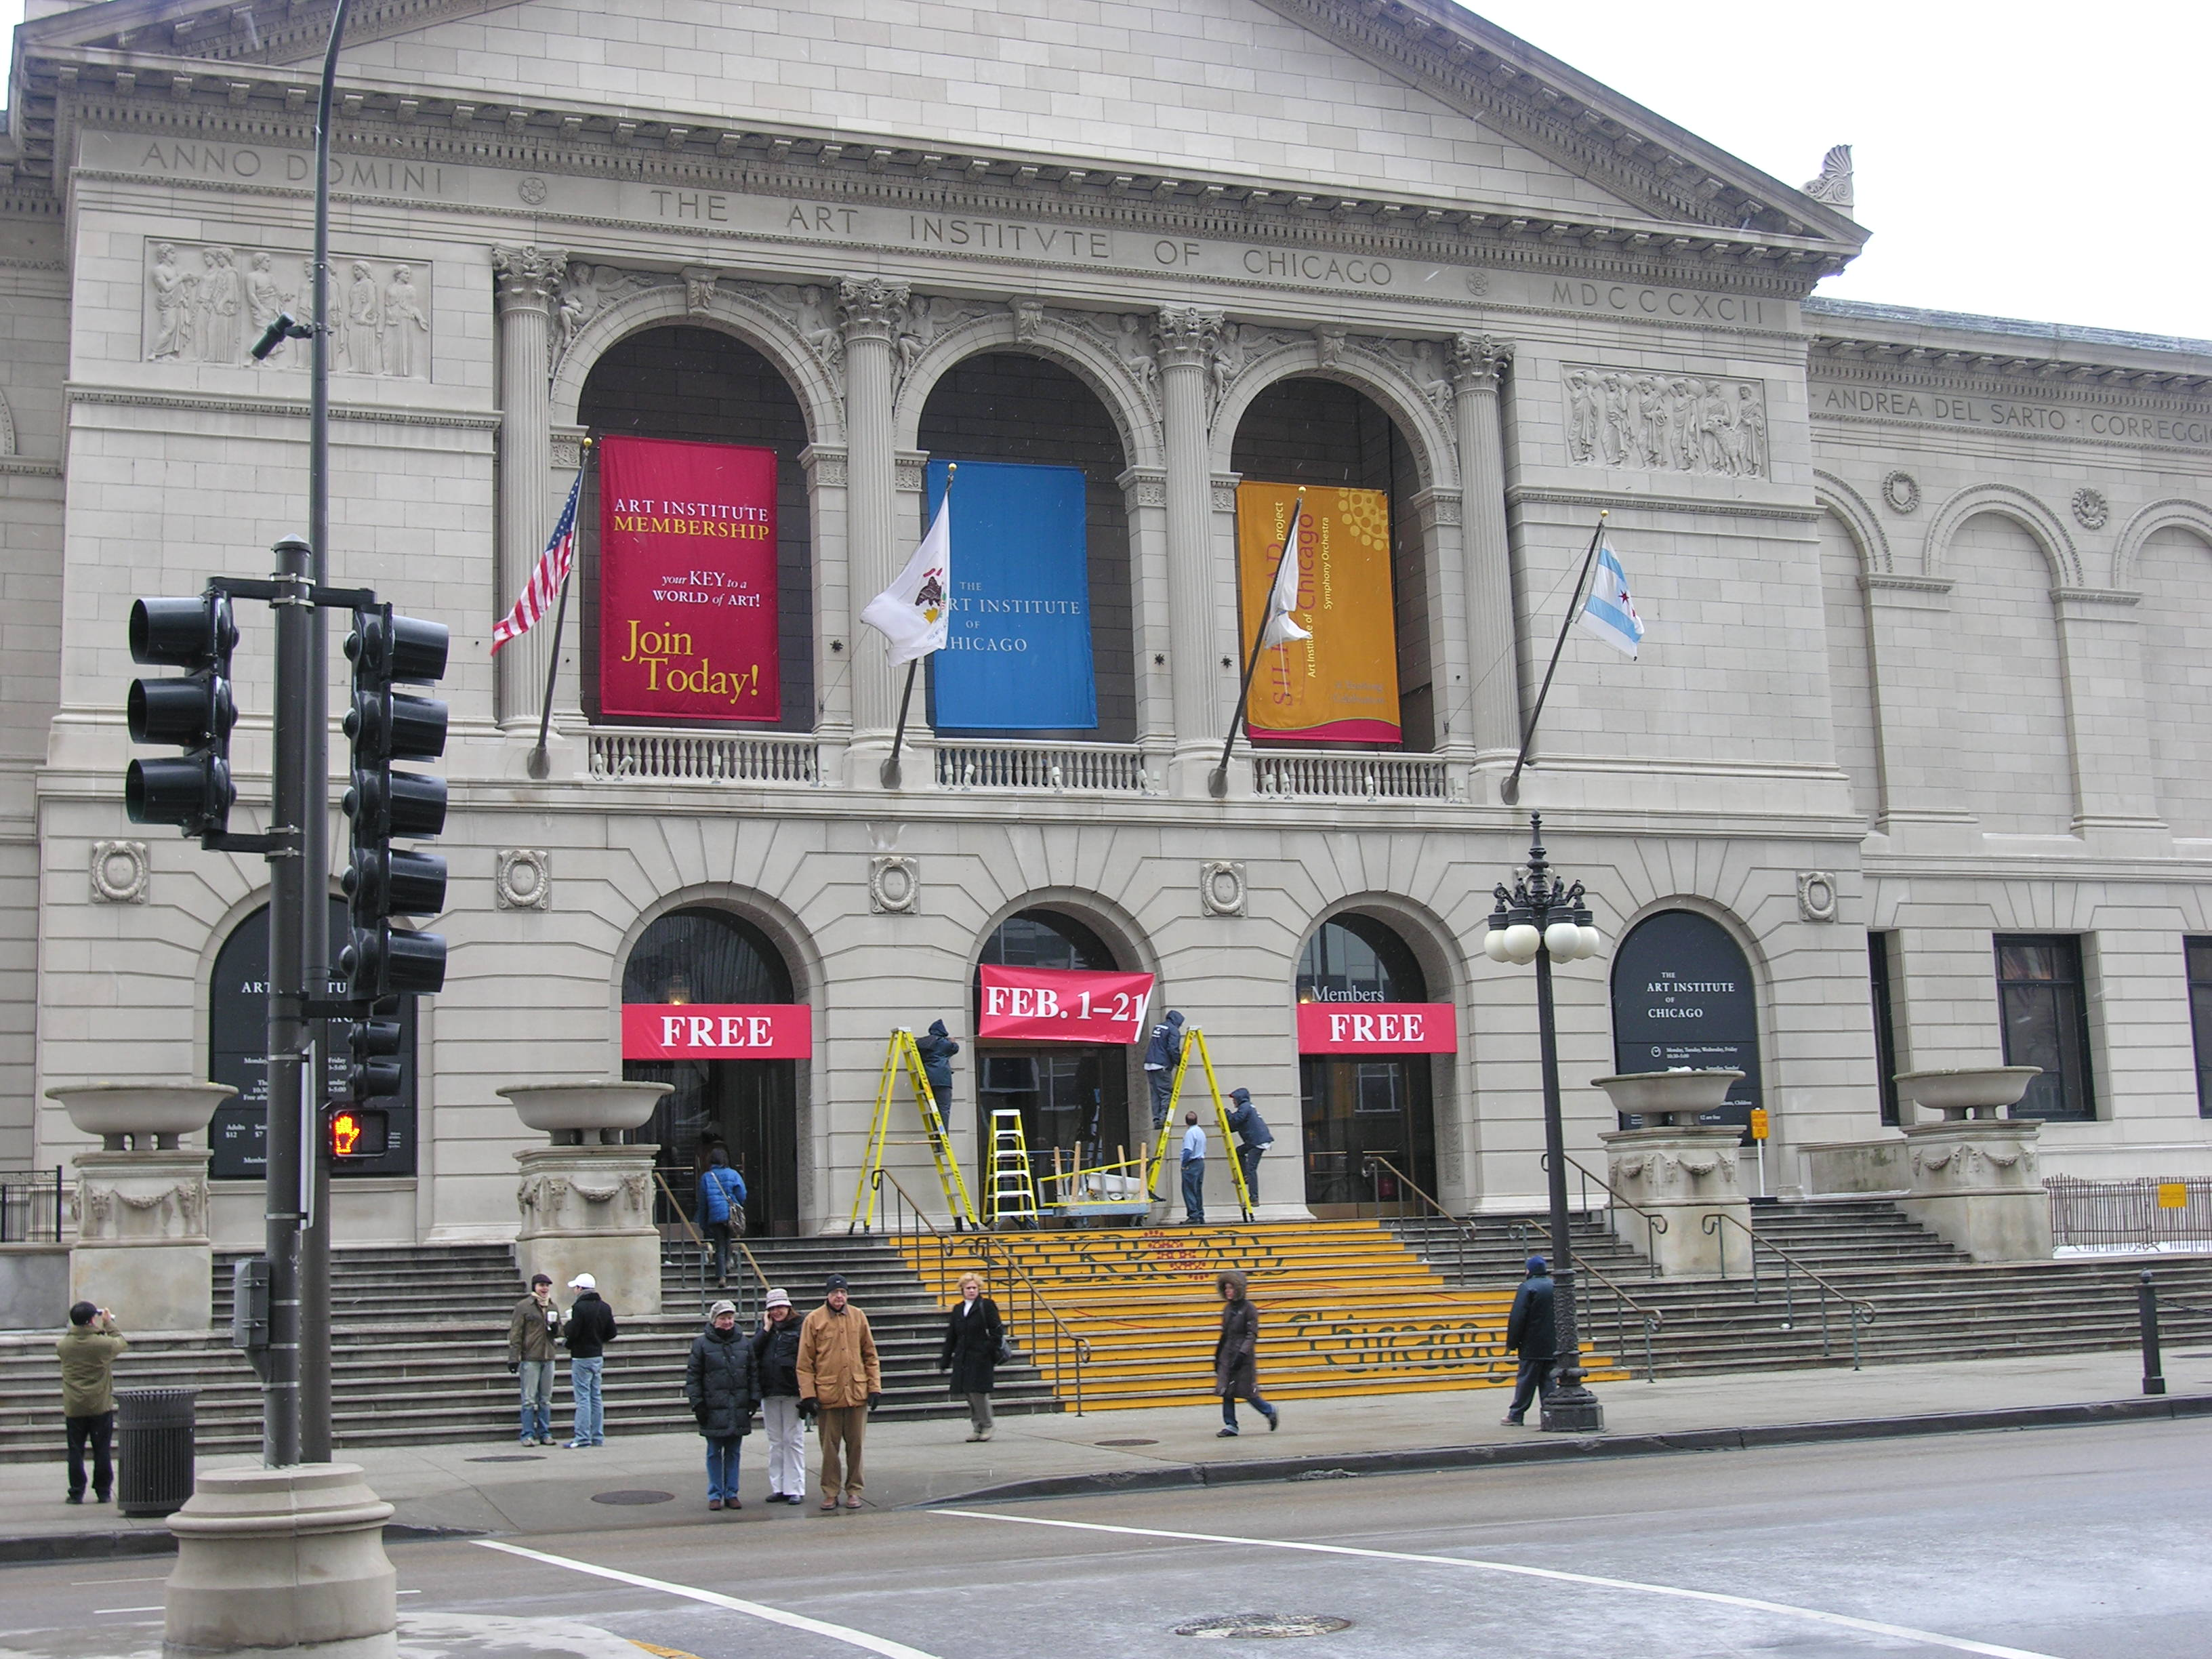 The Art Institute of Chicago (photo by Nathaniel Swift)